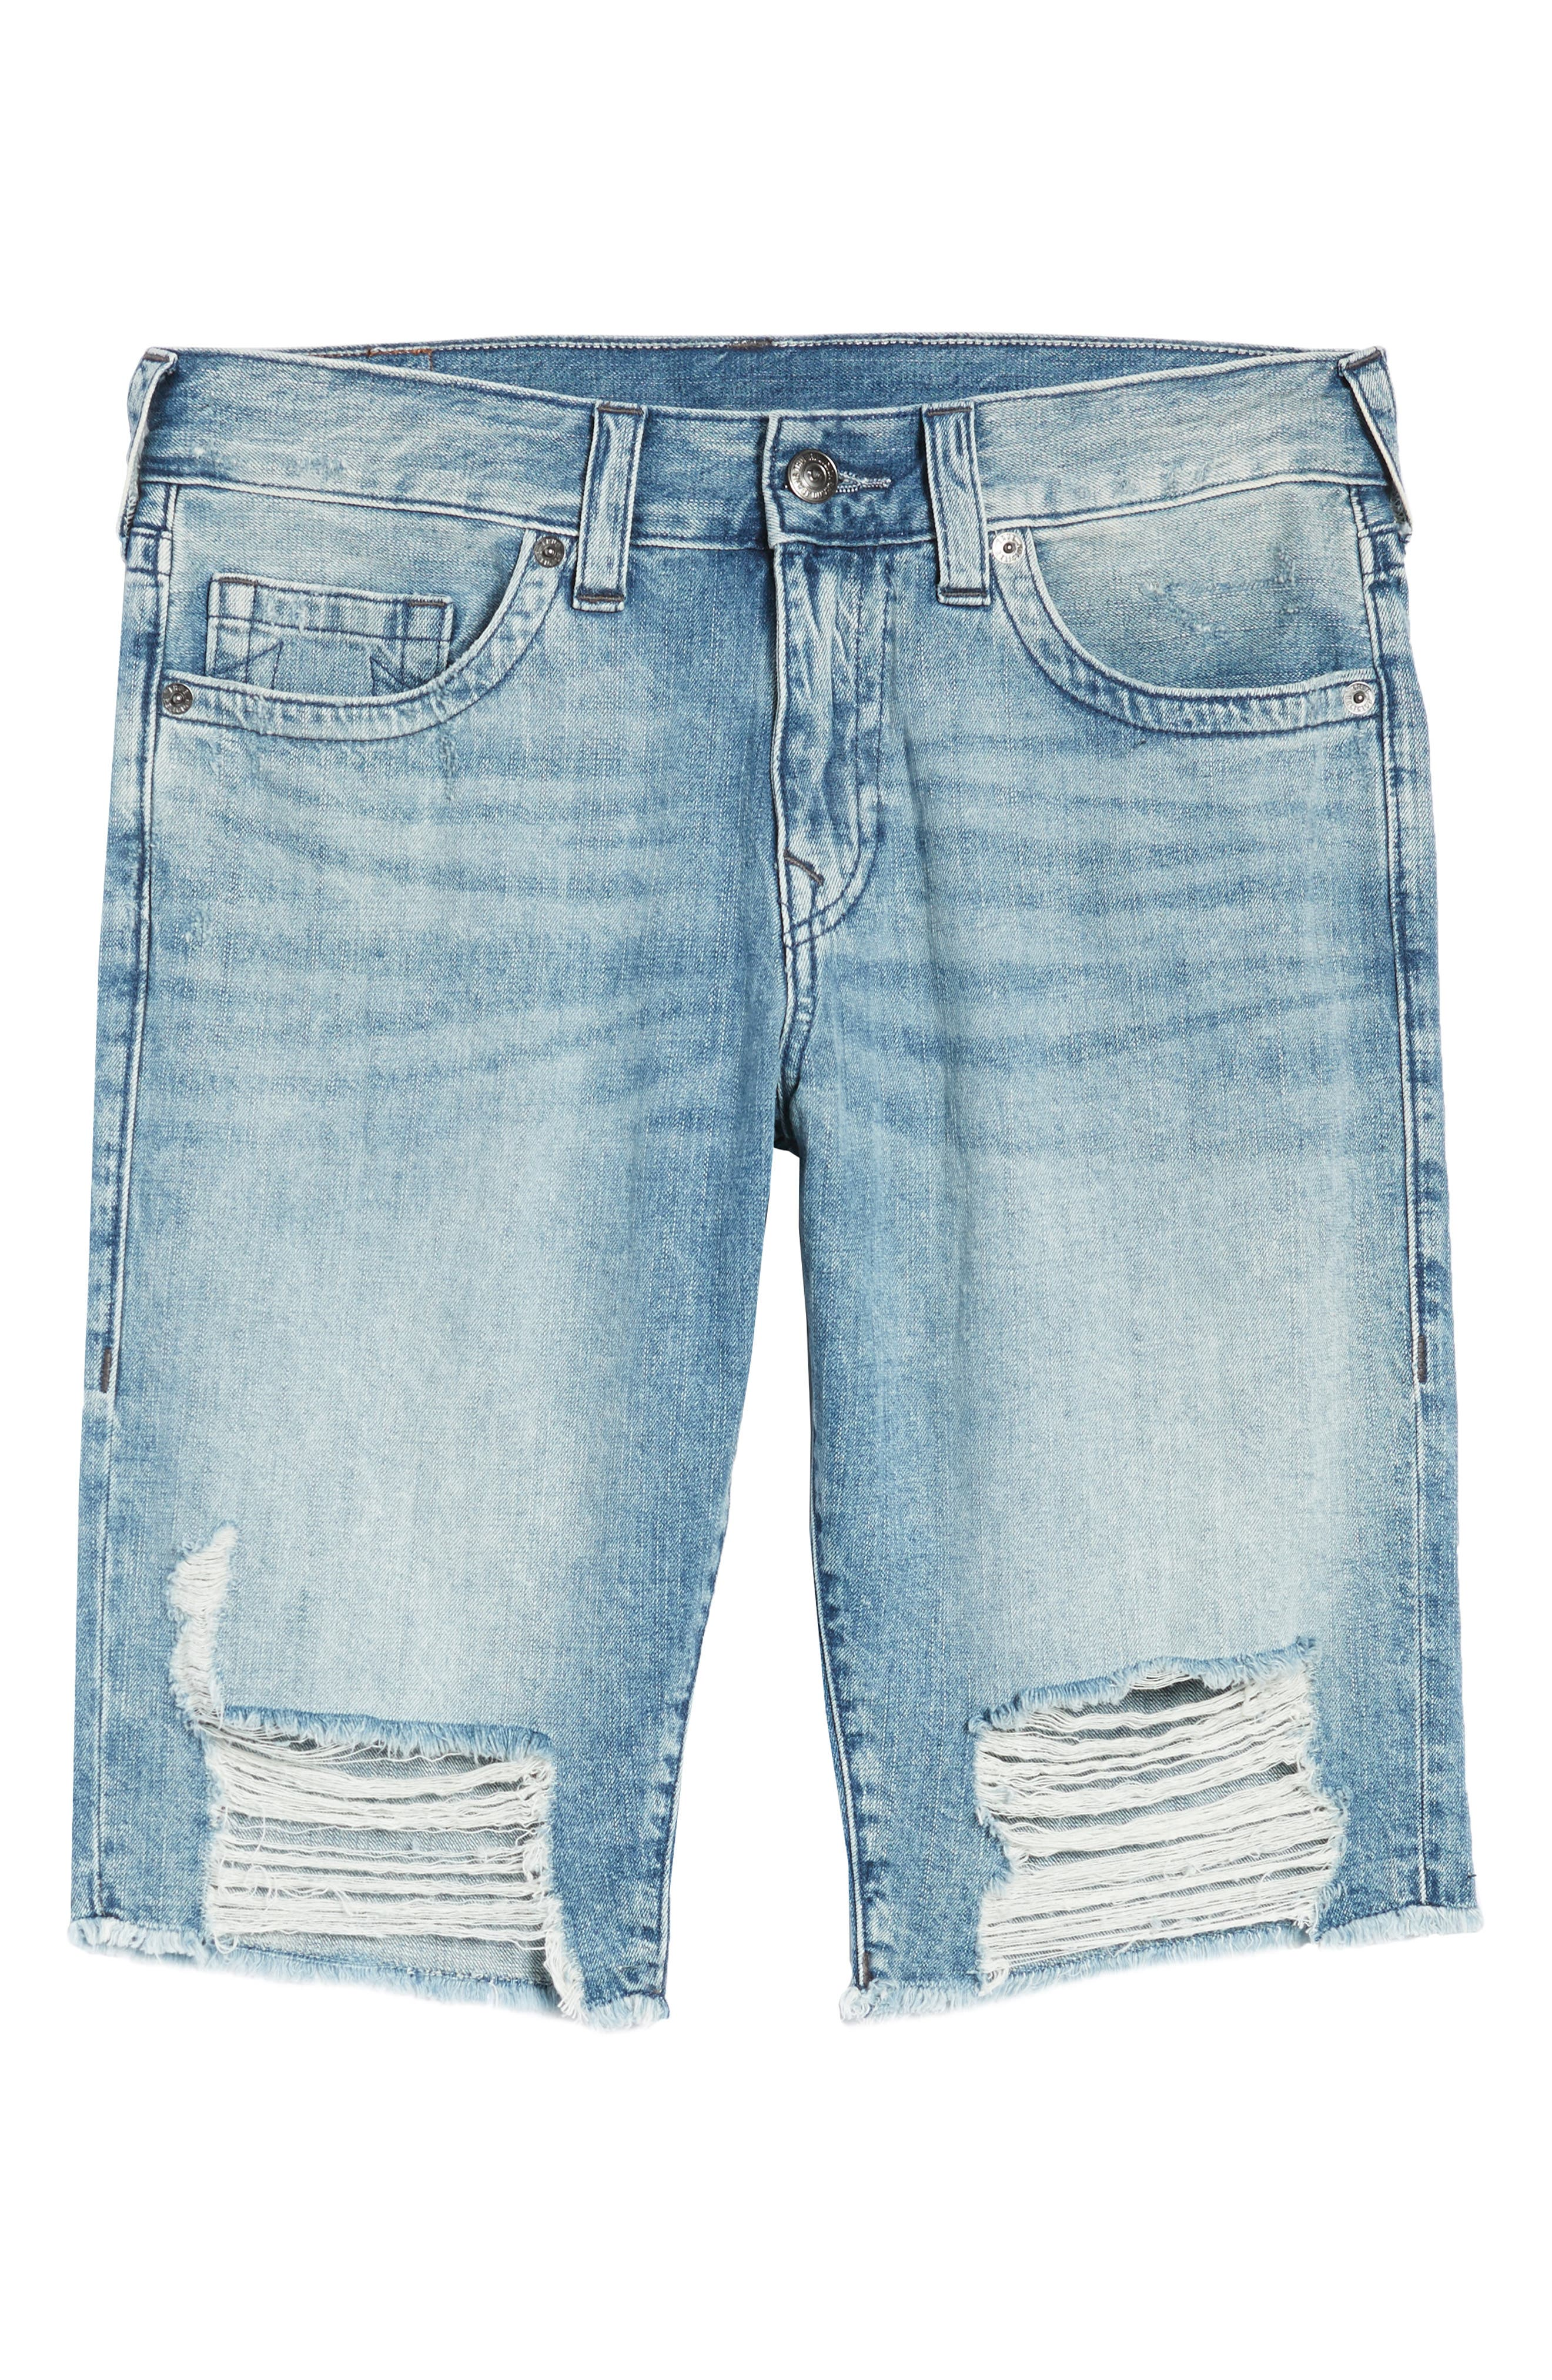 Ricky Relaxed Fit Shorts,                             Alternate thumbnail 6, color,                             SOLAR BLUE